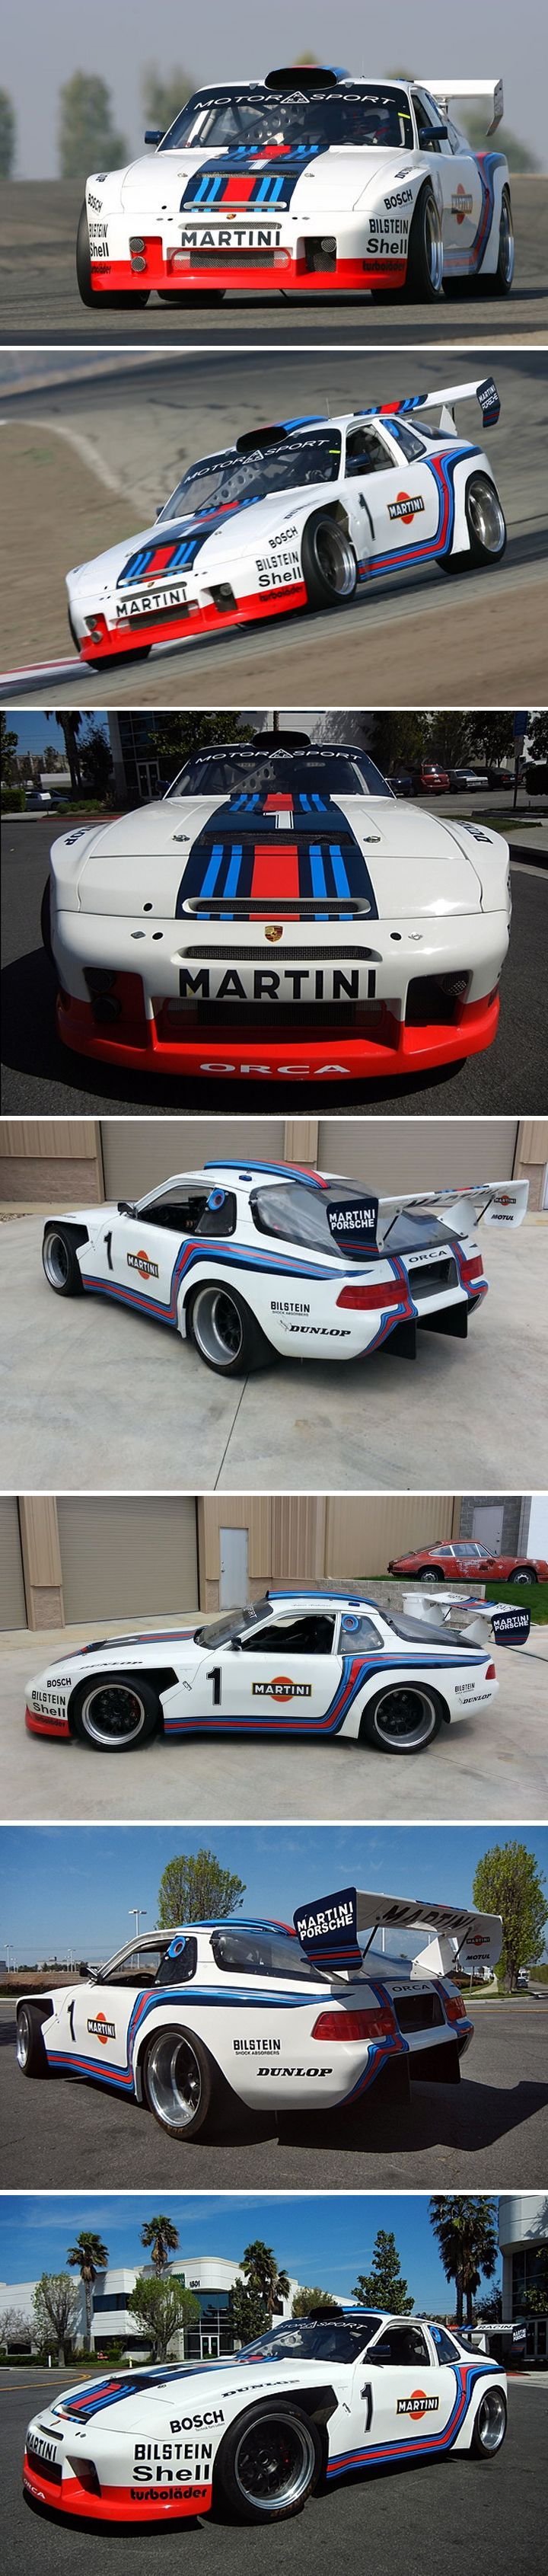 1986 PORSCHE 944 TURBO ORCA RACE CAR